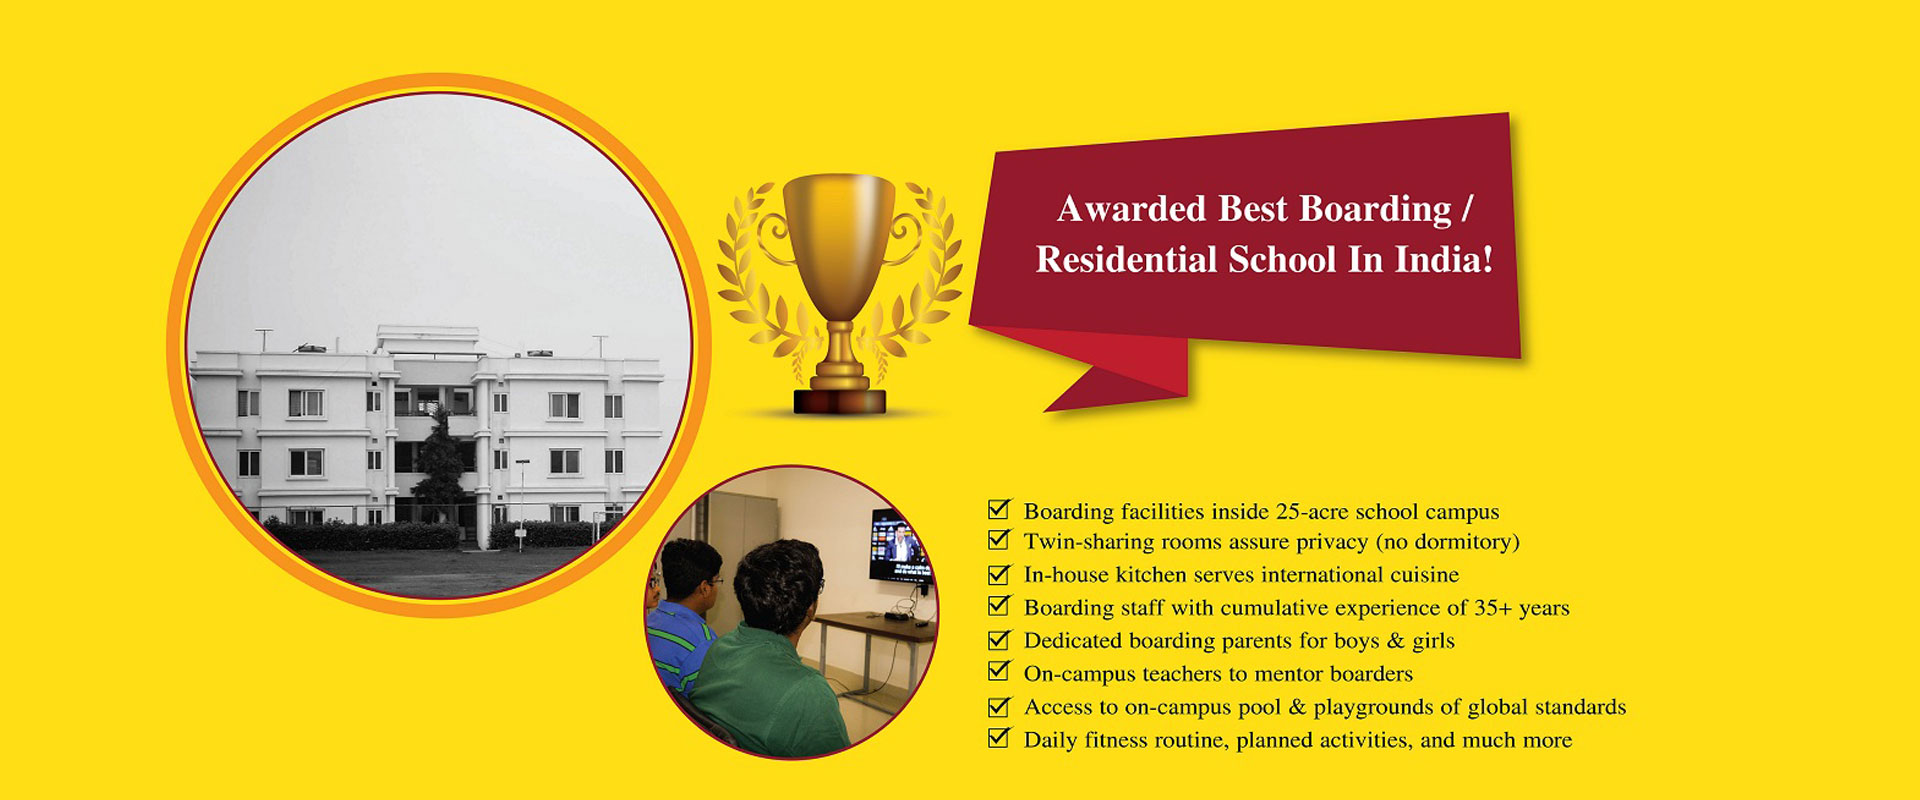 Best Boarding and Residential School In India